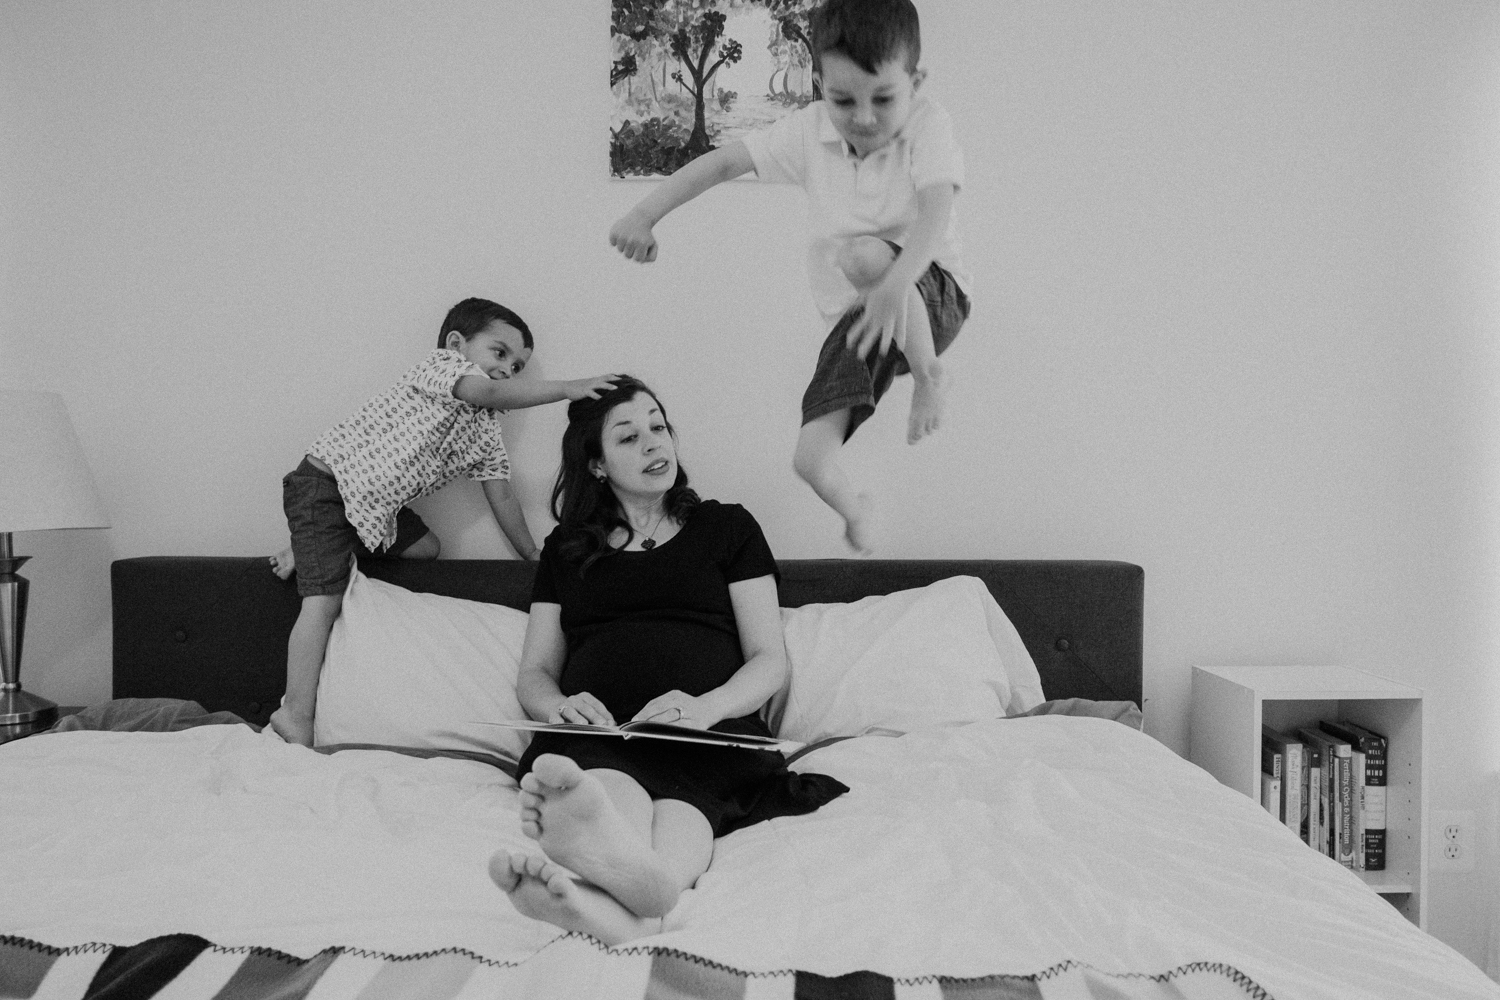 A boy jumps over his mother onto her bed while she looks on.